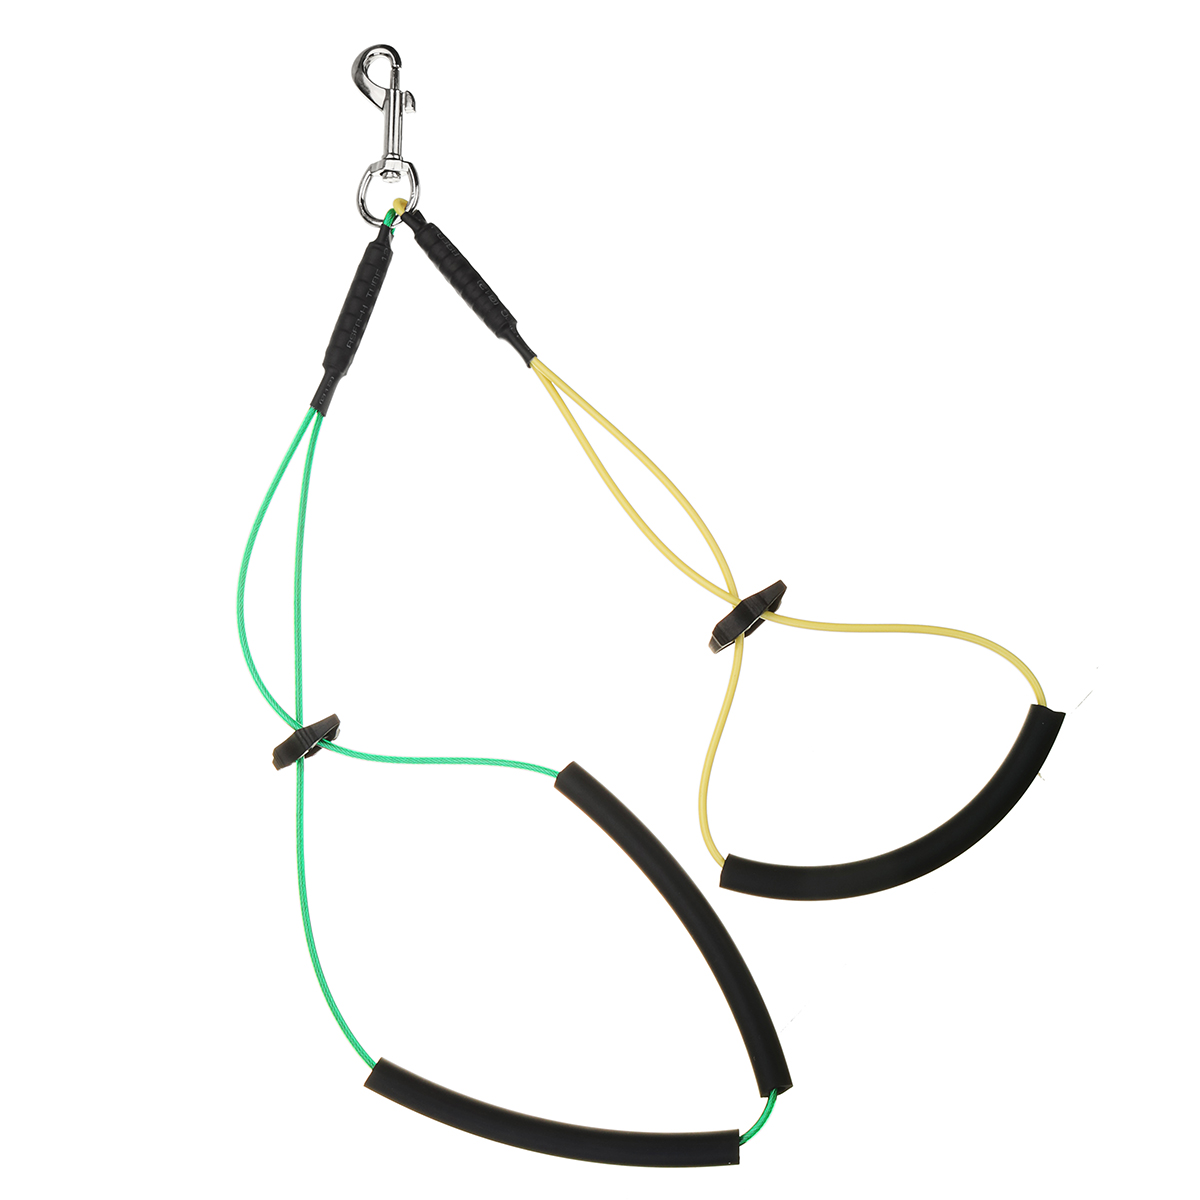 Pet Dog Cat Grooming Table Harness Adjustable Double Noose